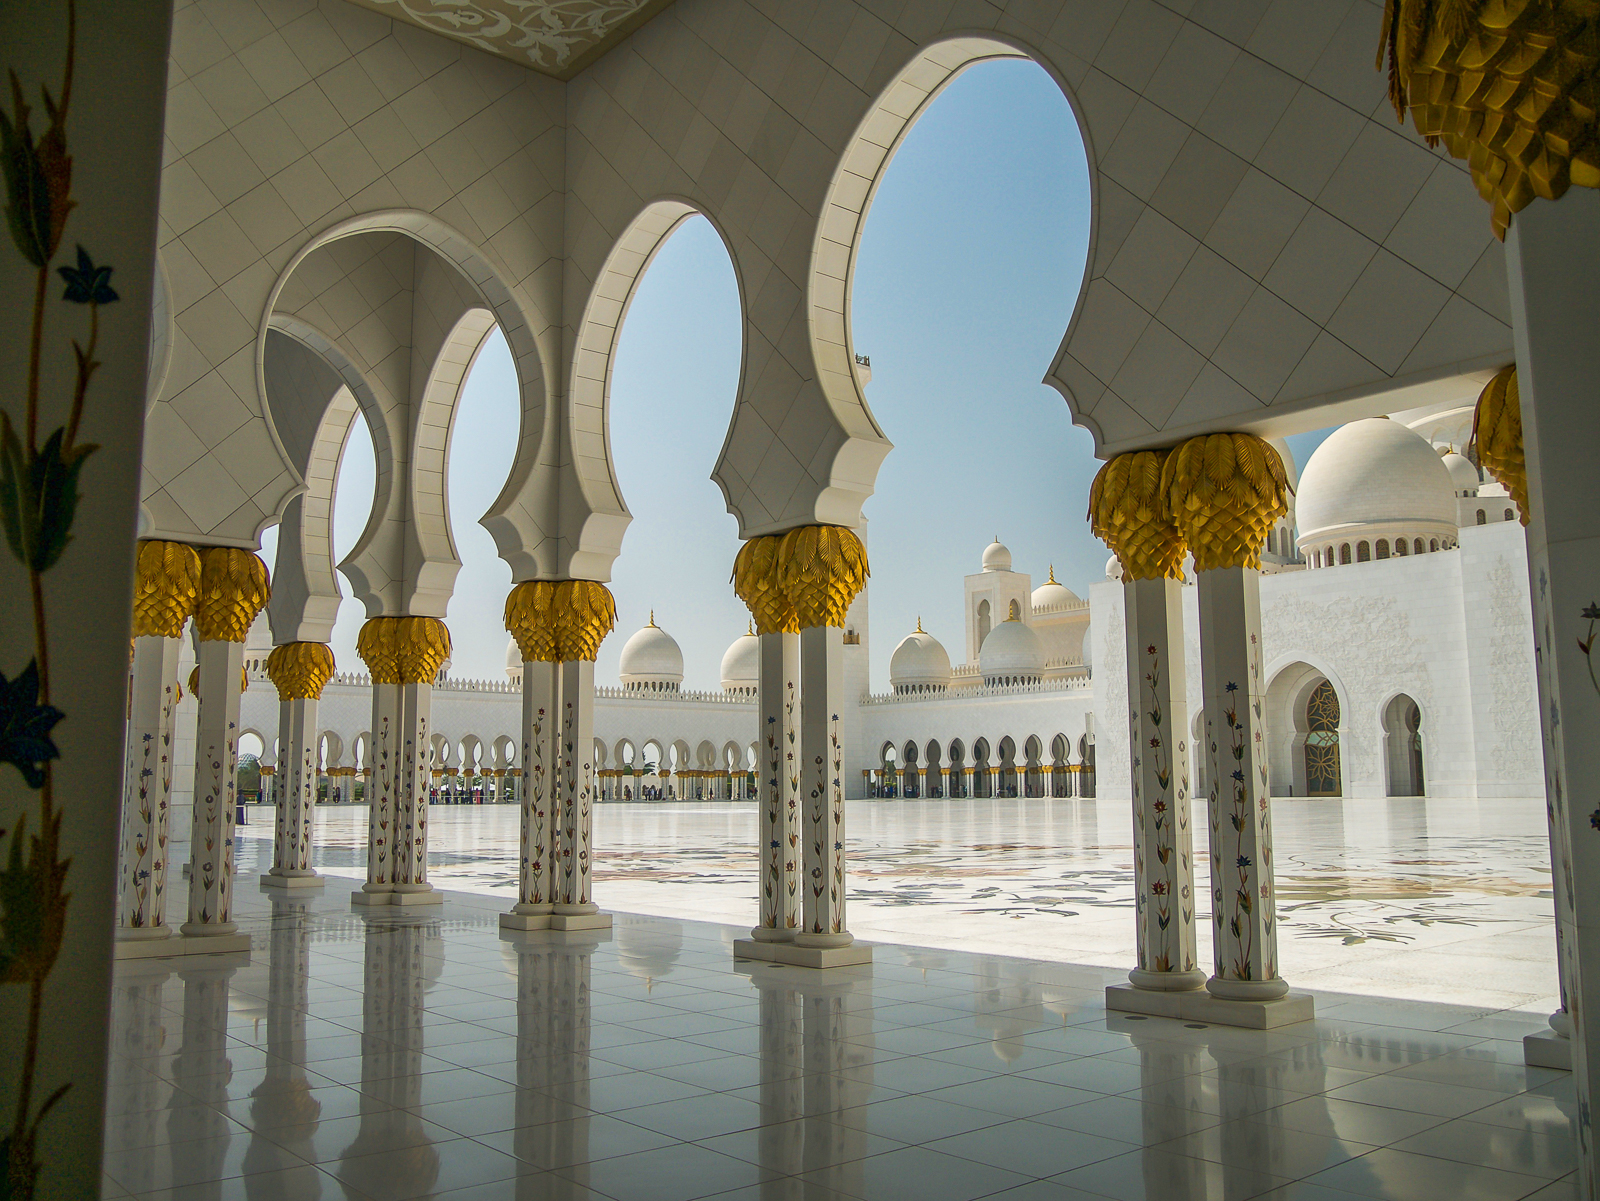 Courtyard in Sheikh Zayed Mosque